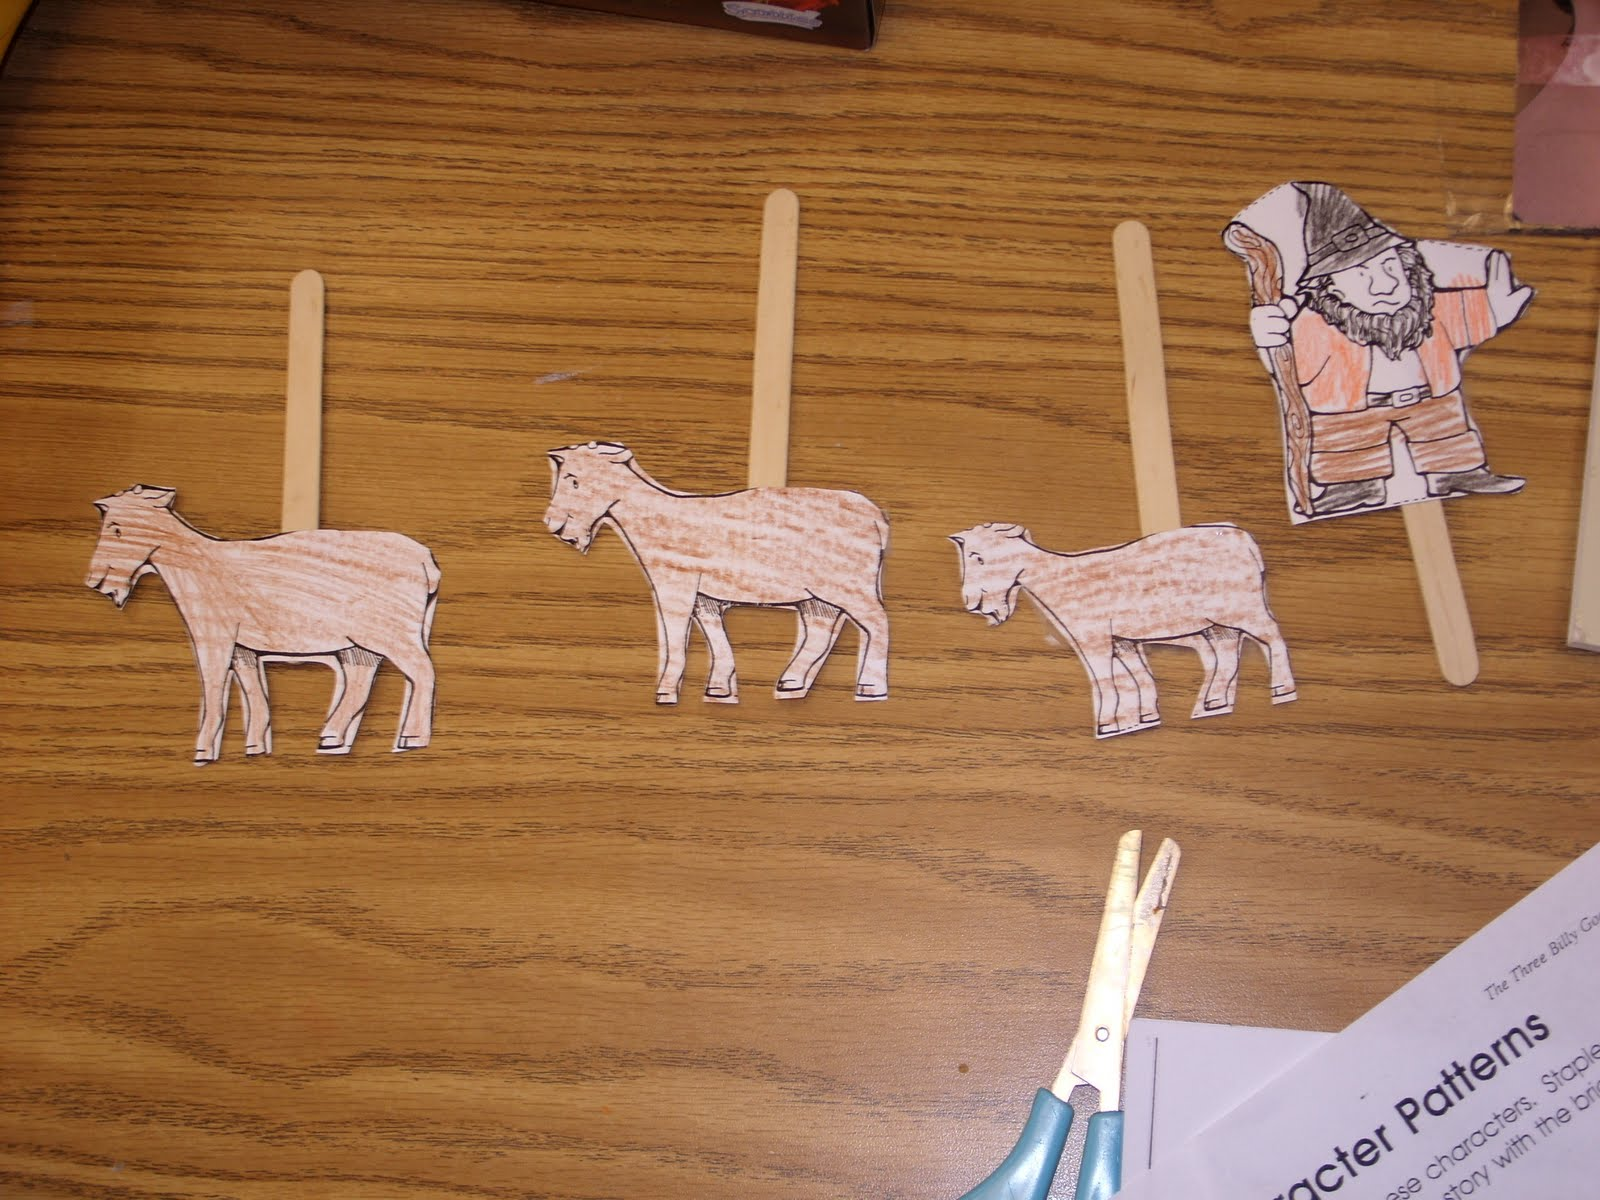 Put Your Whole Self In The Three Billy Goats Gruff